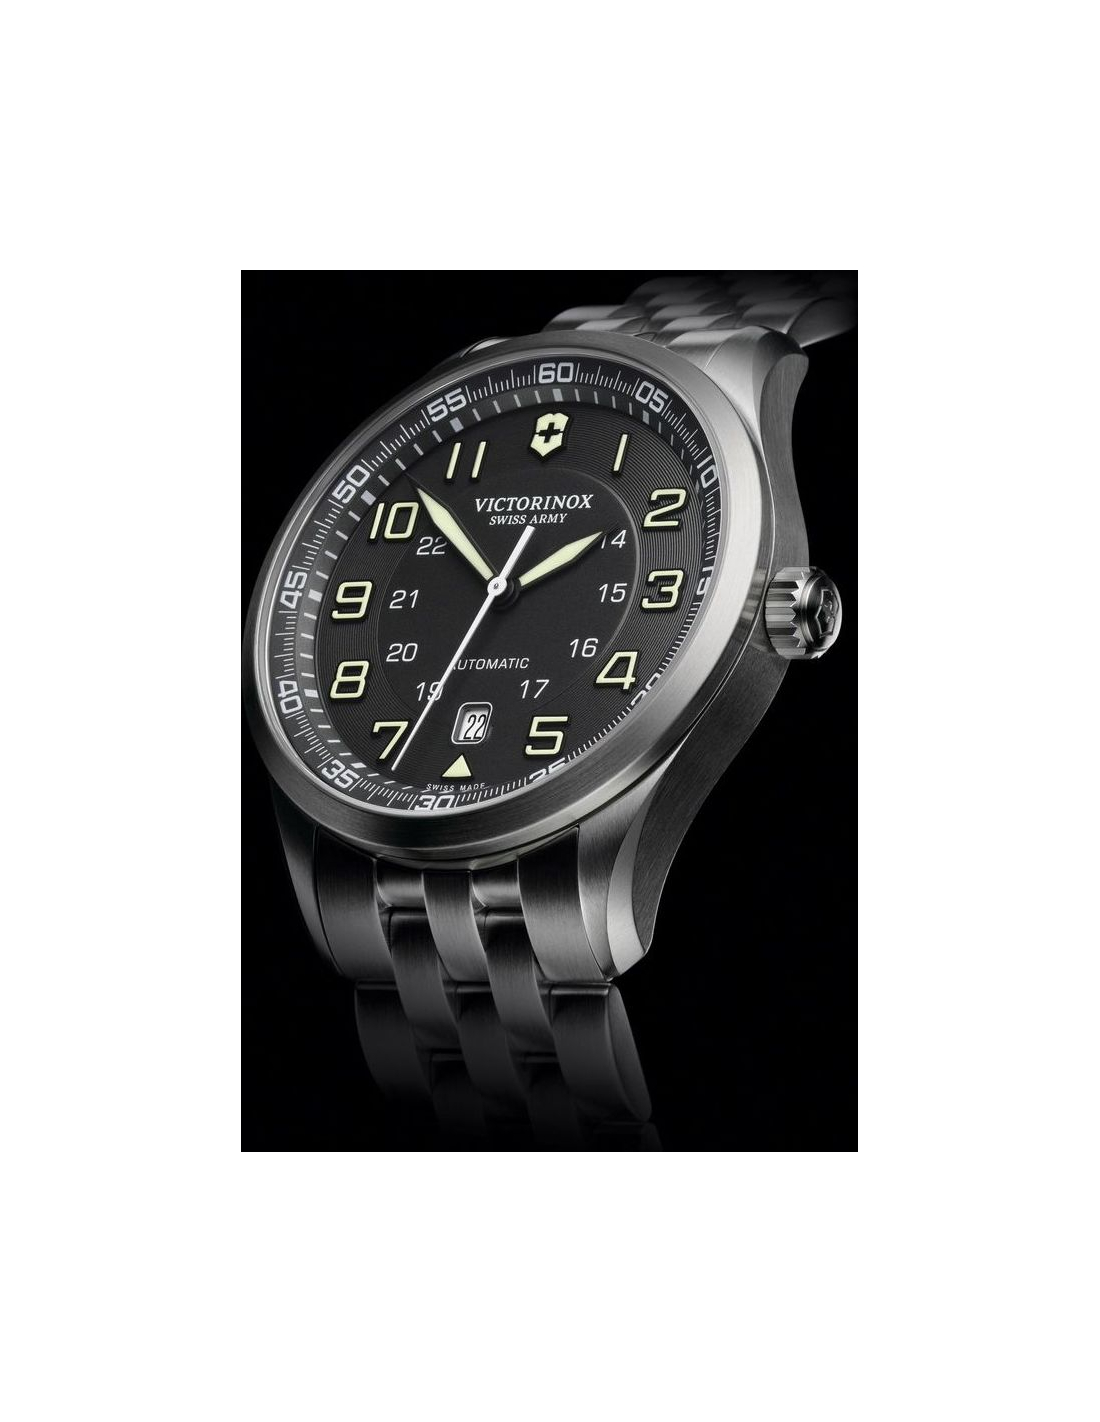 c9ae8bf7589 Previous. VICTORINOX Swiss Army 241508 AirBoss Mechanical Watch. VICTORINOX  Swiss Army 241508 AirBoss Mechanical Watch